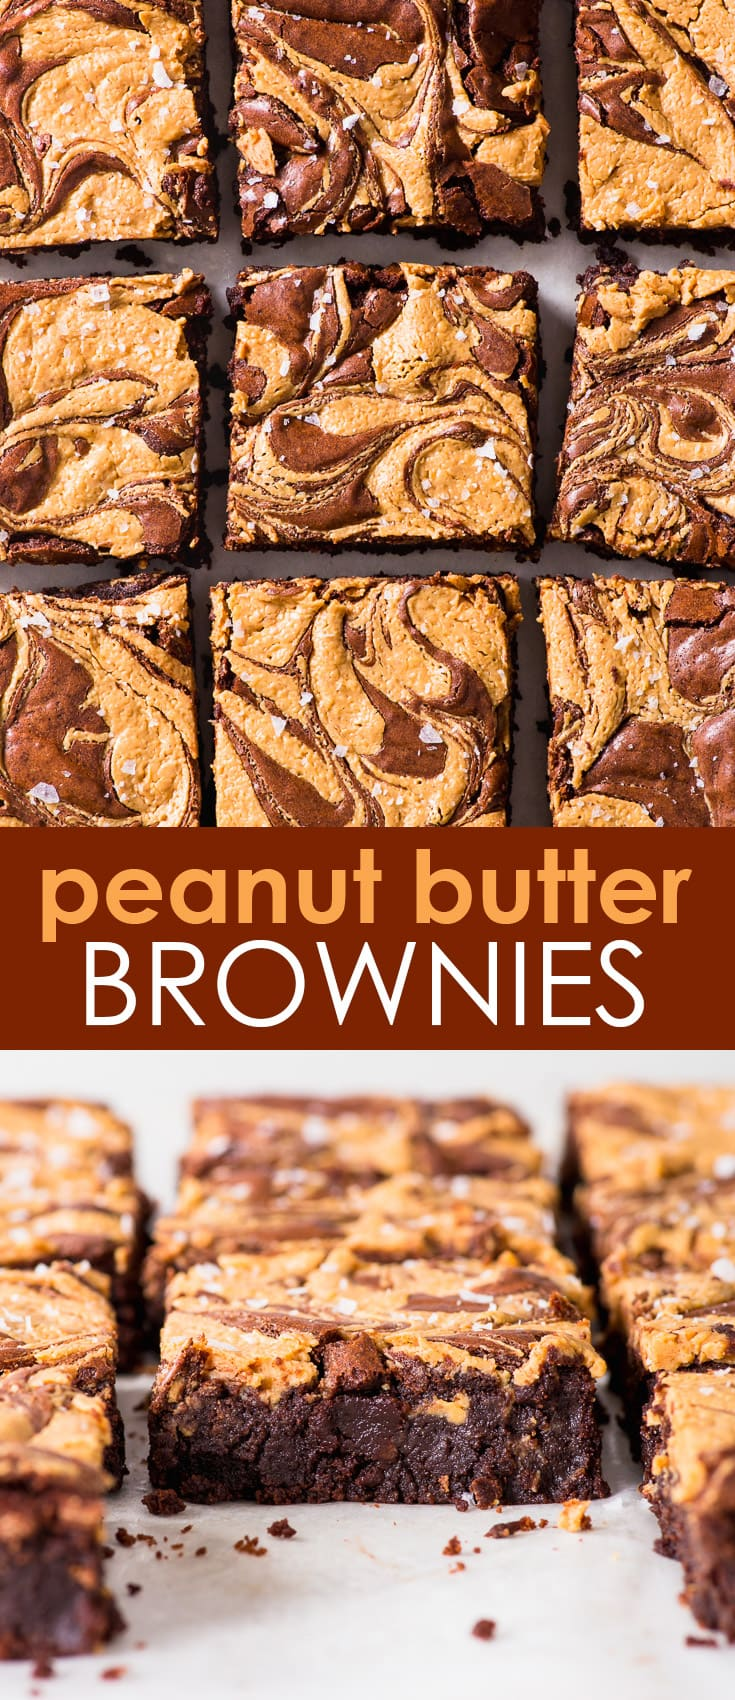 Fudgy Peanut Butter Swirl Brownies (Gluten Free) - There are few things better than these peanut butter swirl brownies. They're perfectly fudgy, and the peanut butter swirl (aside from being drop dead gorgeous) pairs perfectly with the chocolatey bittersweetness of the brownies. Gluten free brownies. Chocolate brownies recipe. Easy brownies. Peanut butter brownies. Chocolate desserts. Easy desserts. Gluten free dessert. Peanut butter recipes. Easy baking recipes. #peanutbutter #brownies